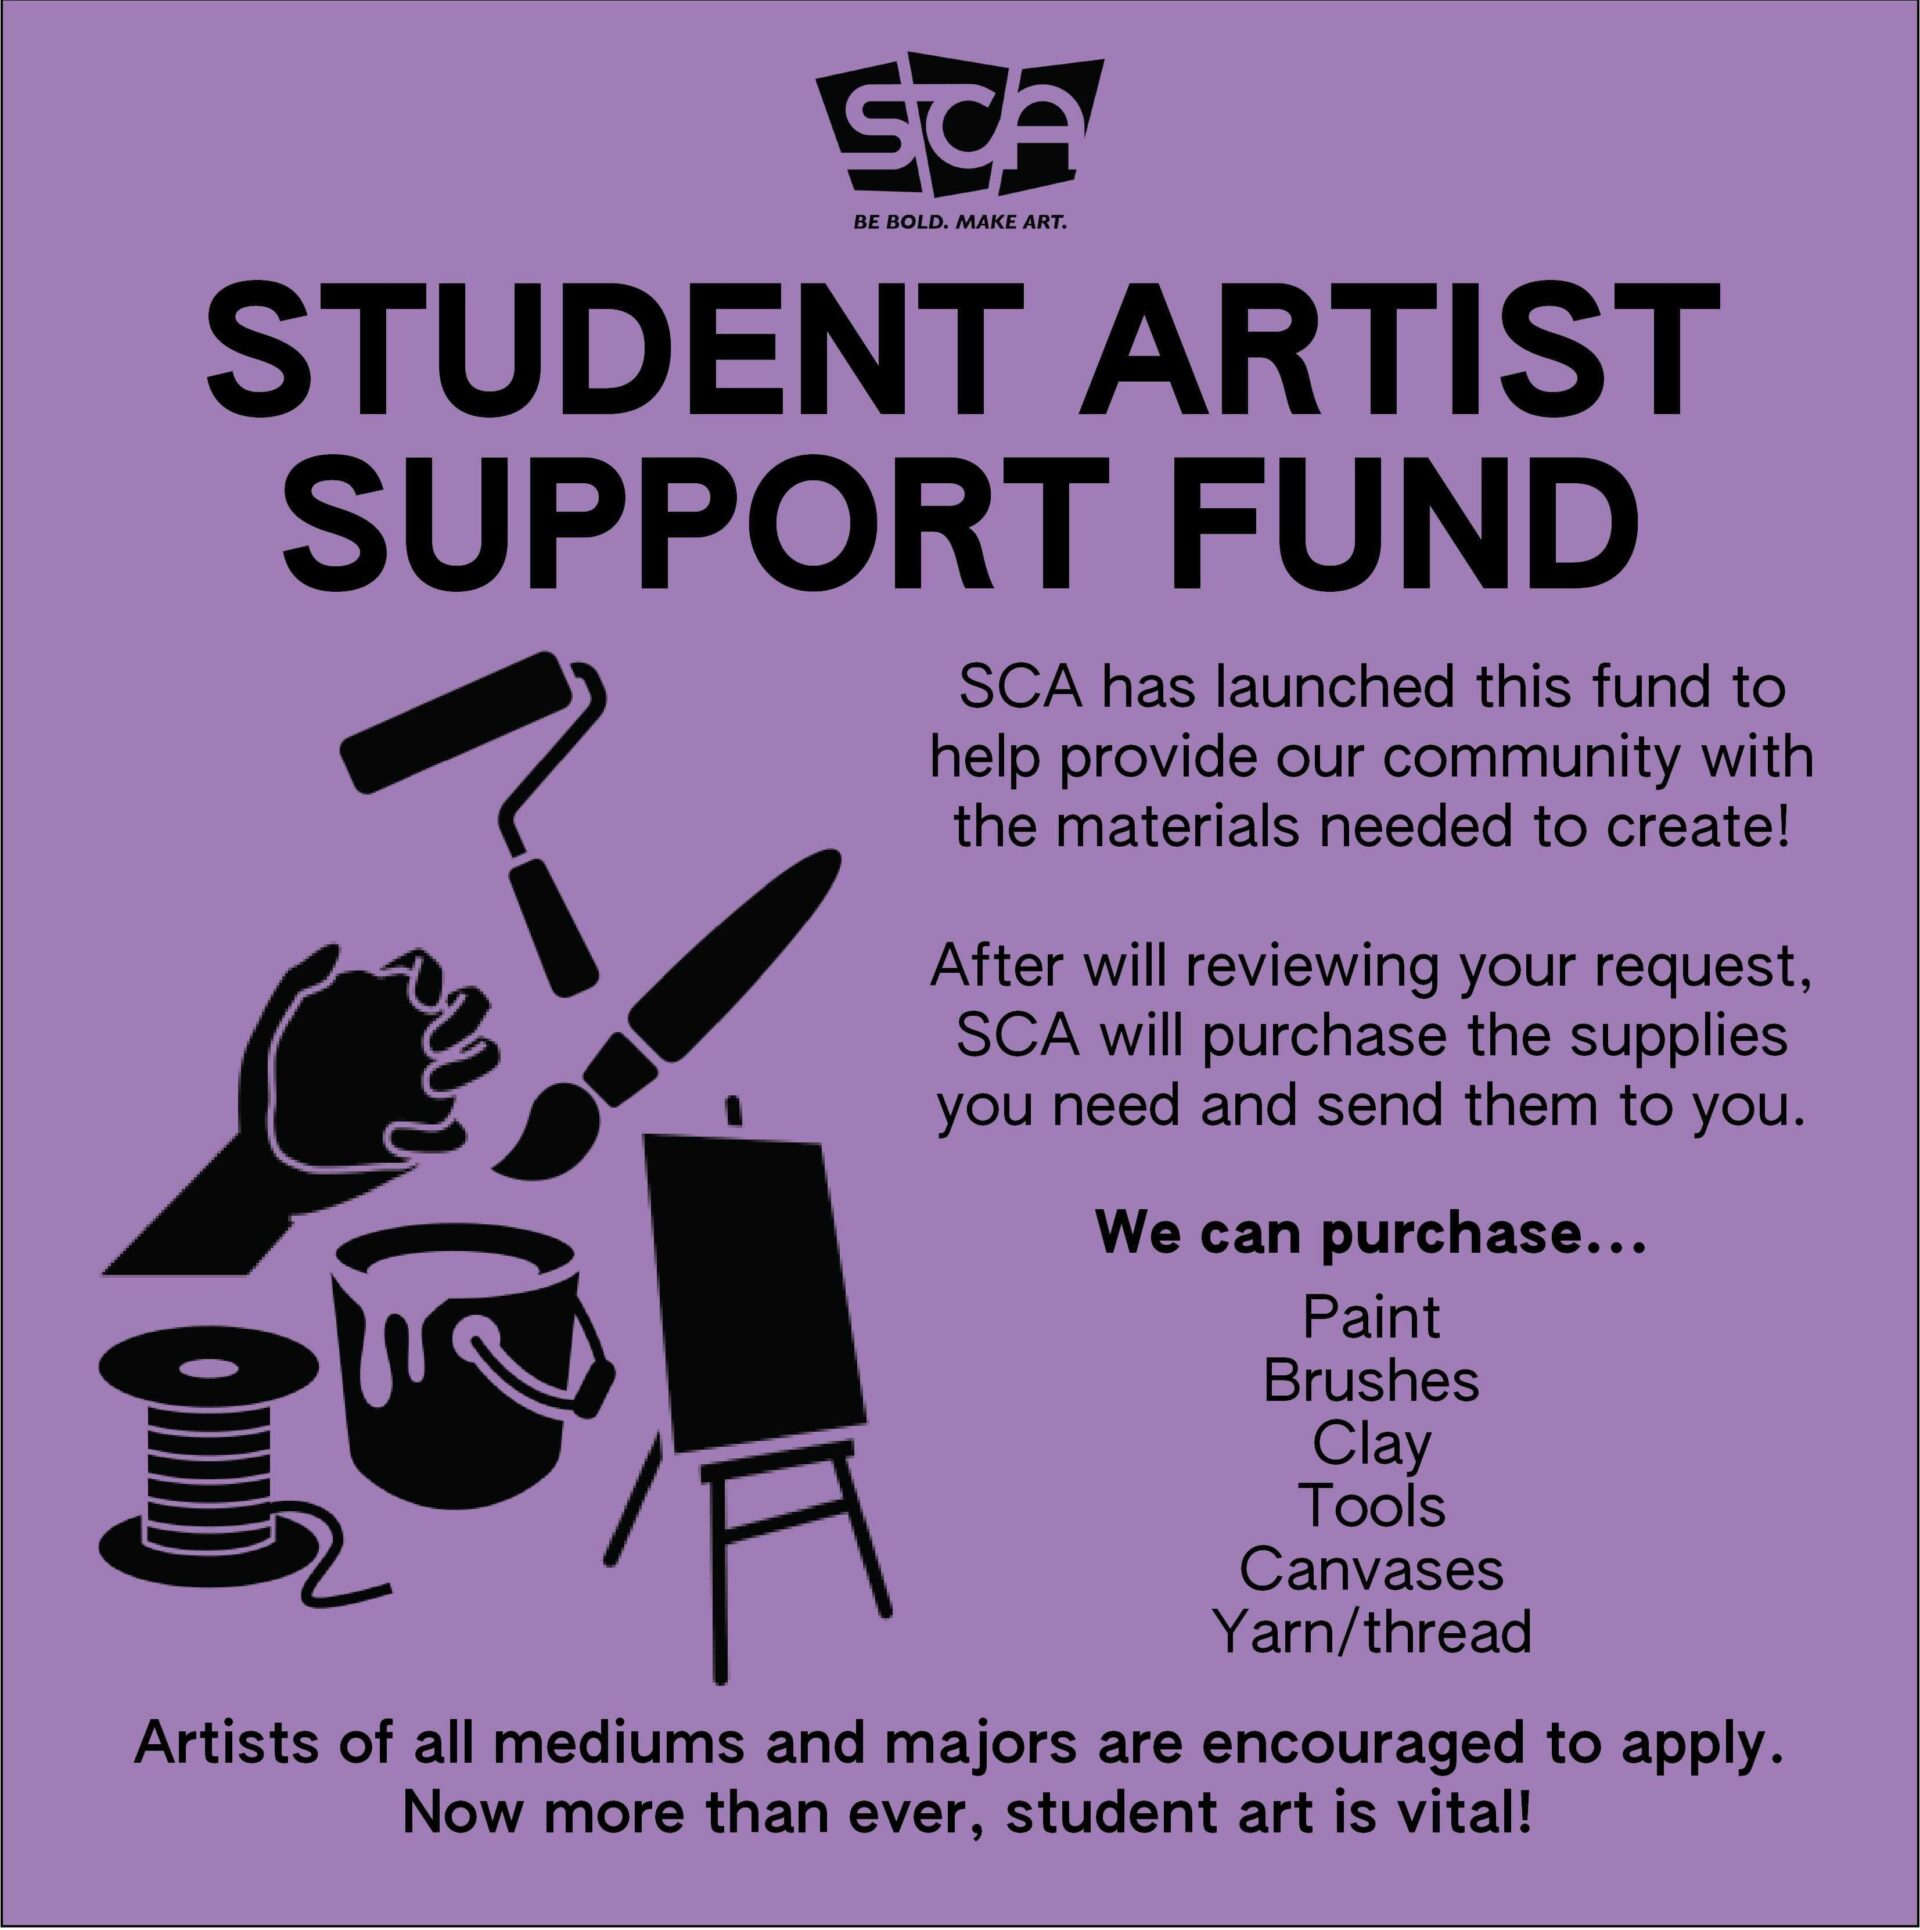 Student Artists Support Fund